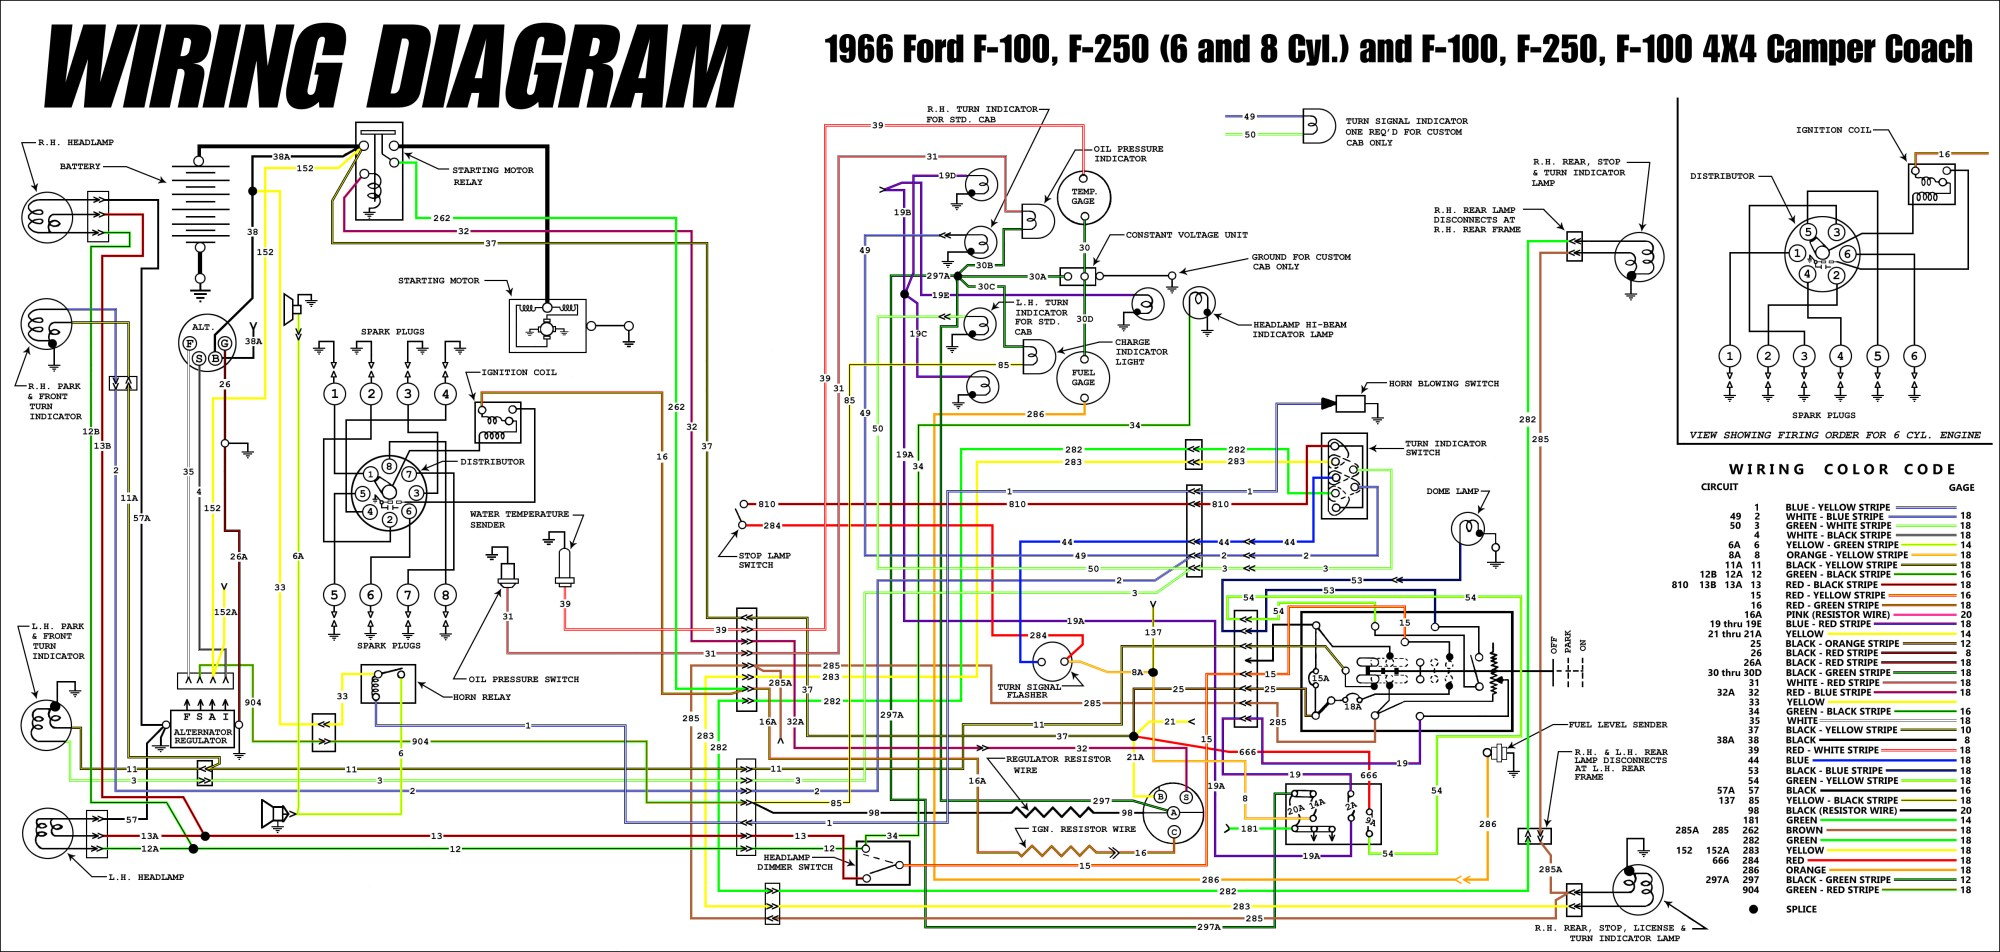 hight resolution of 1966 ford pinto wiring diagram wiring diagram used 1966 ford pinto wiring diagram